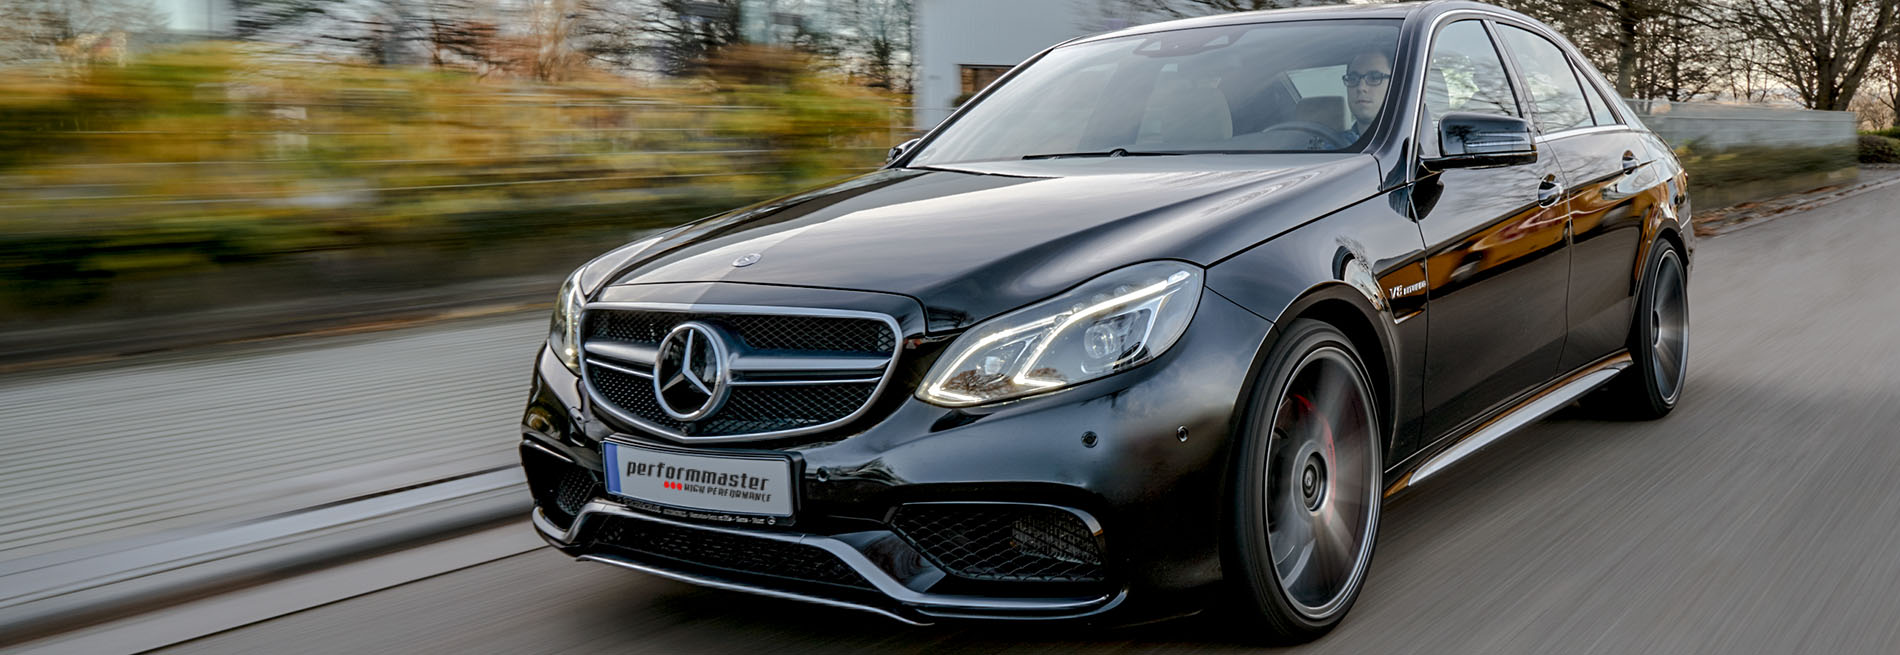 Mercedes (W 212) E 63 AMG ‣ performmaster ‣ Exclusive AMG tuning